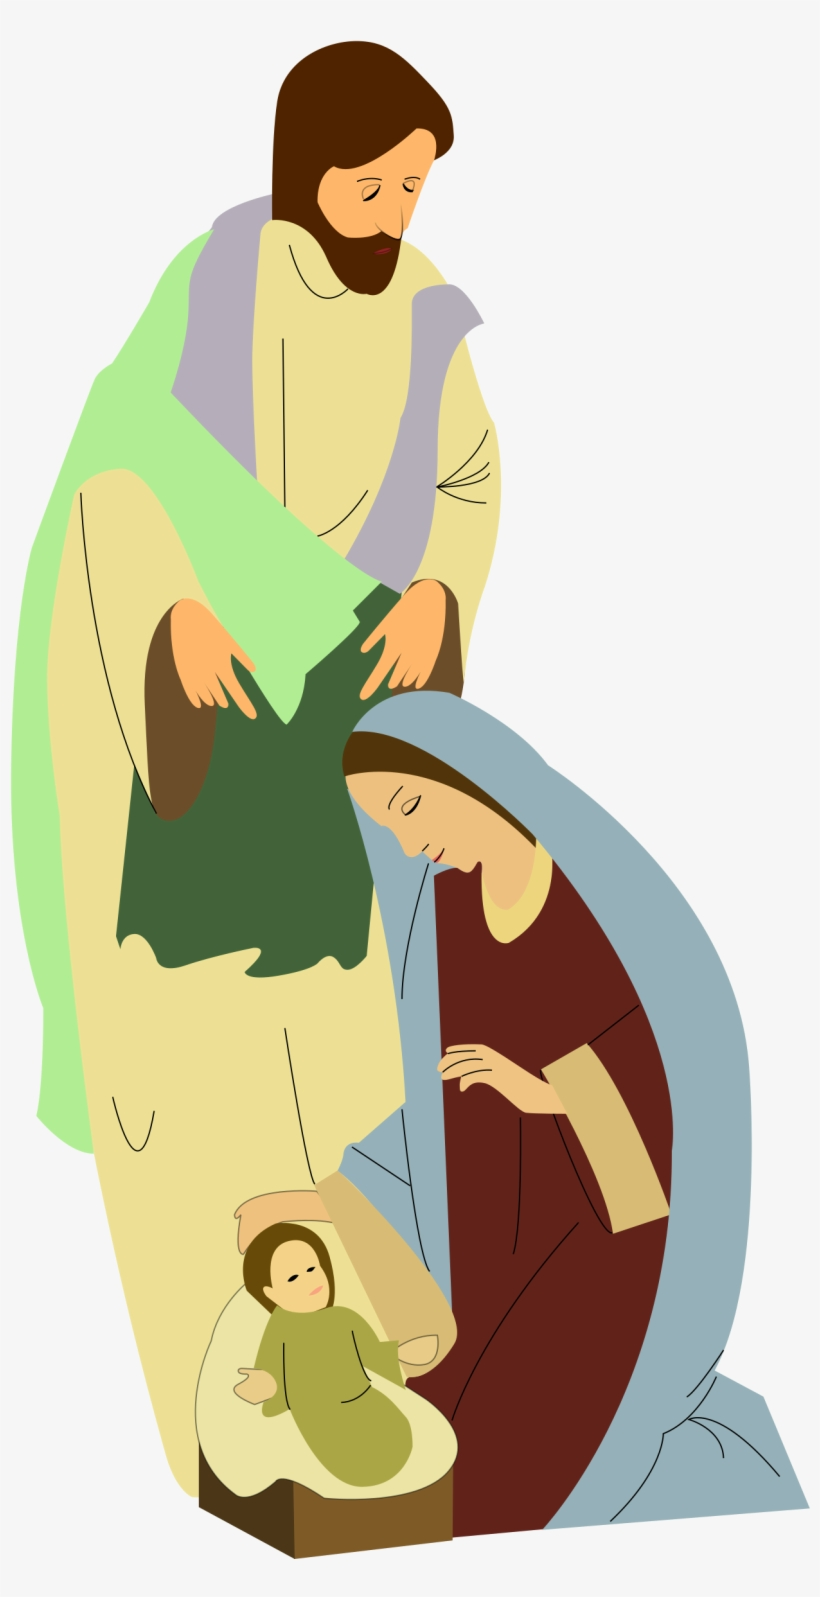 Nativity Scene Clip Art Transparent Png 566x800 Free Download On Nicepng